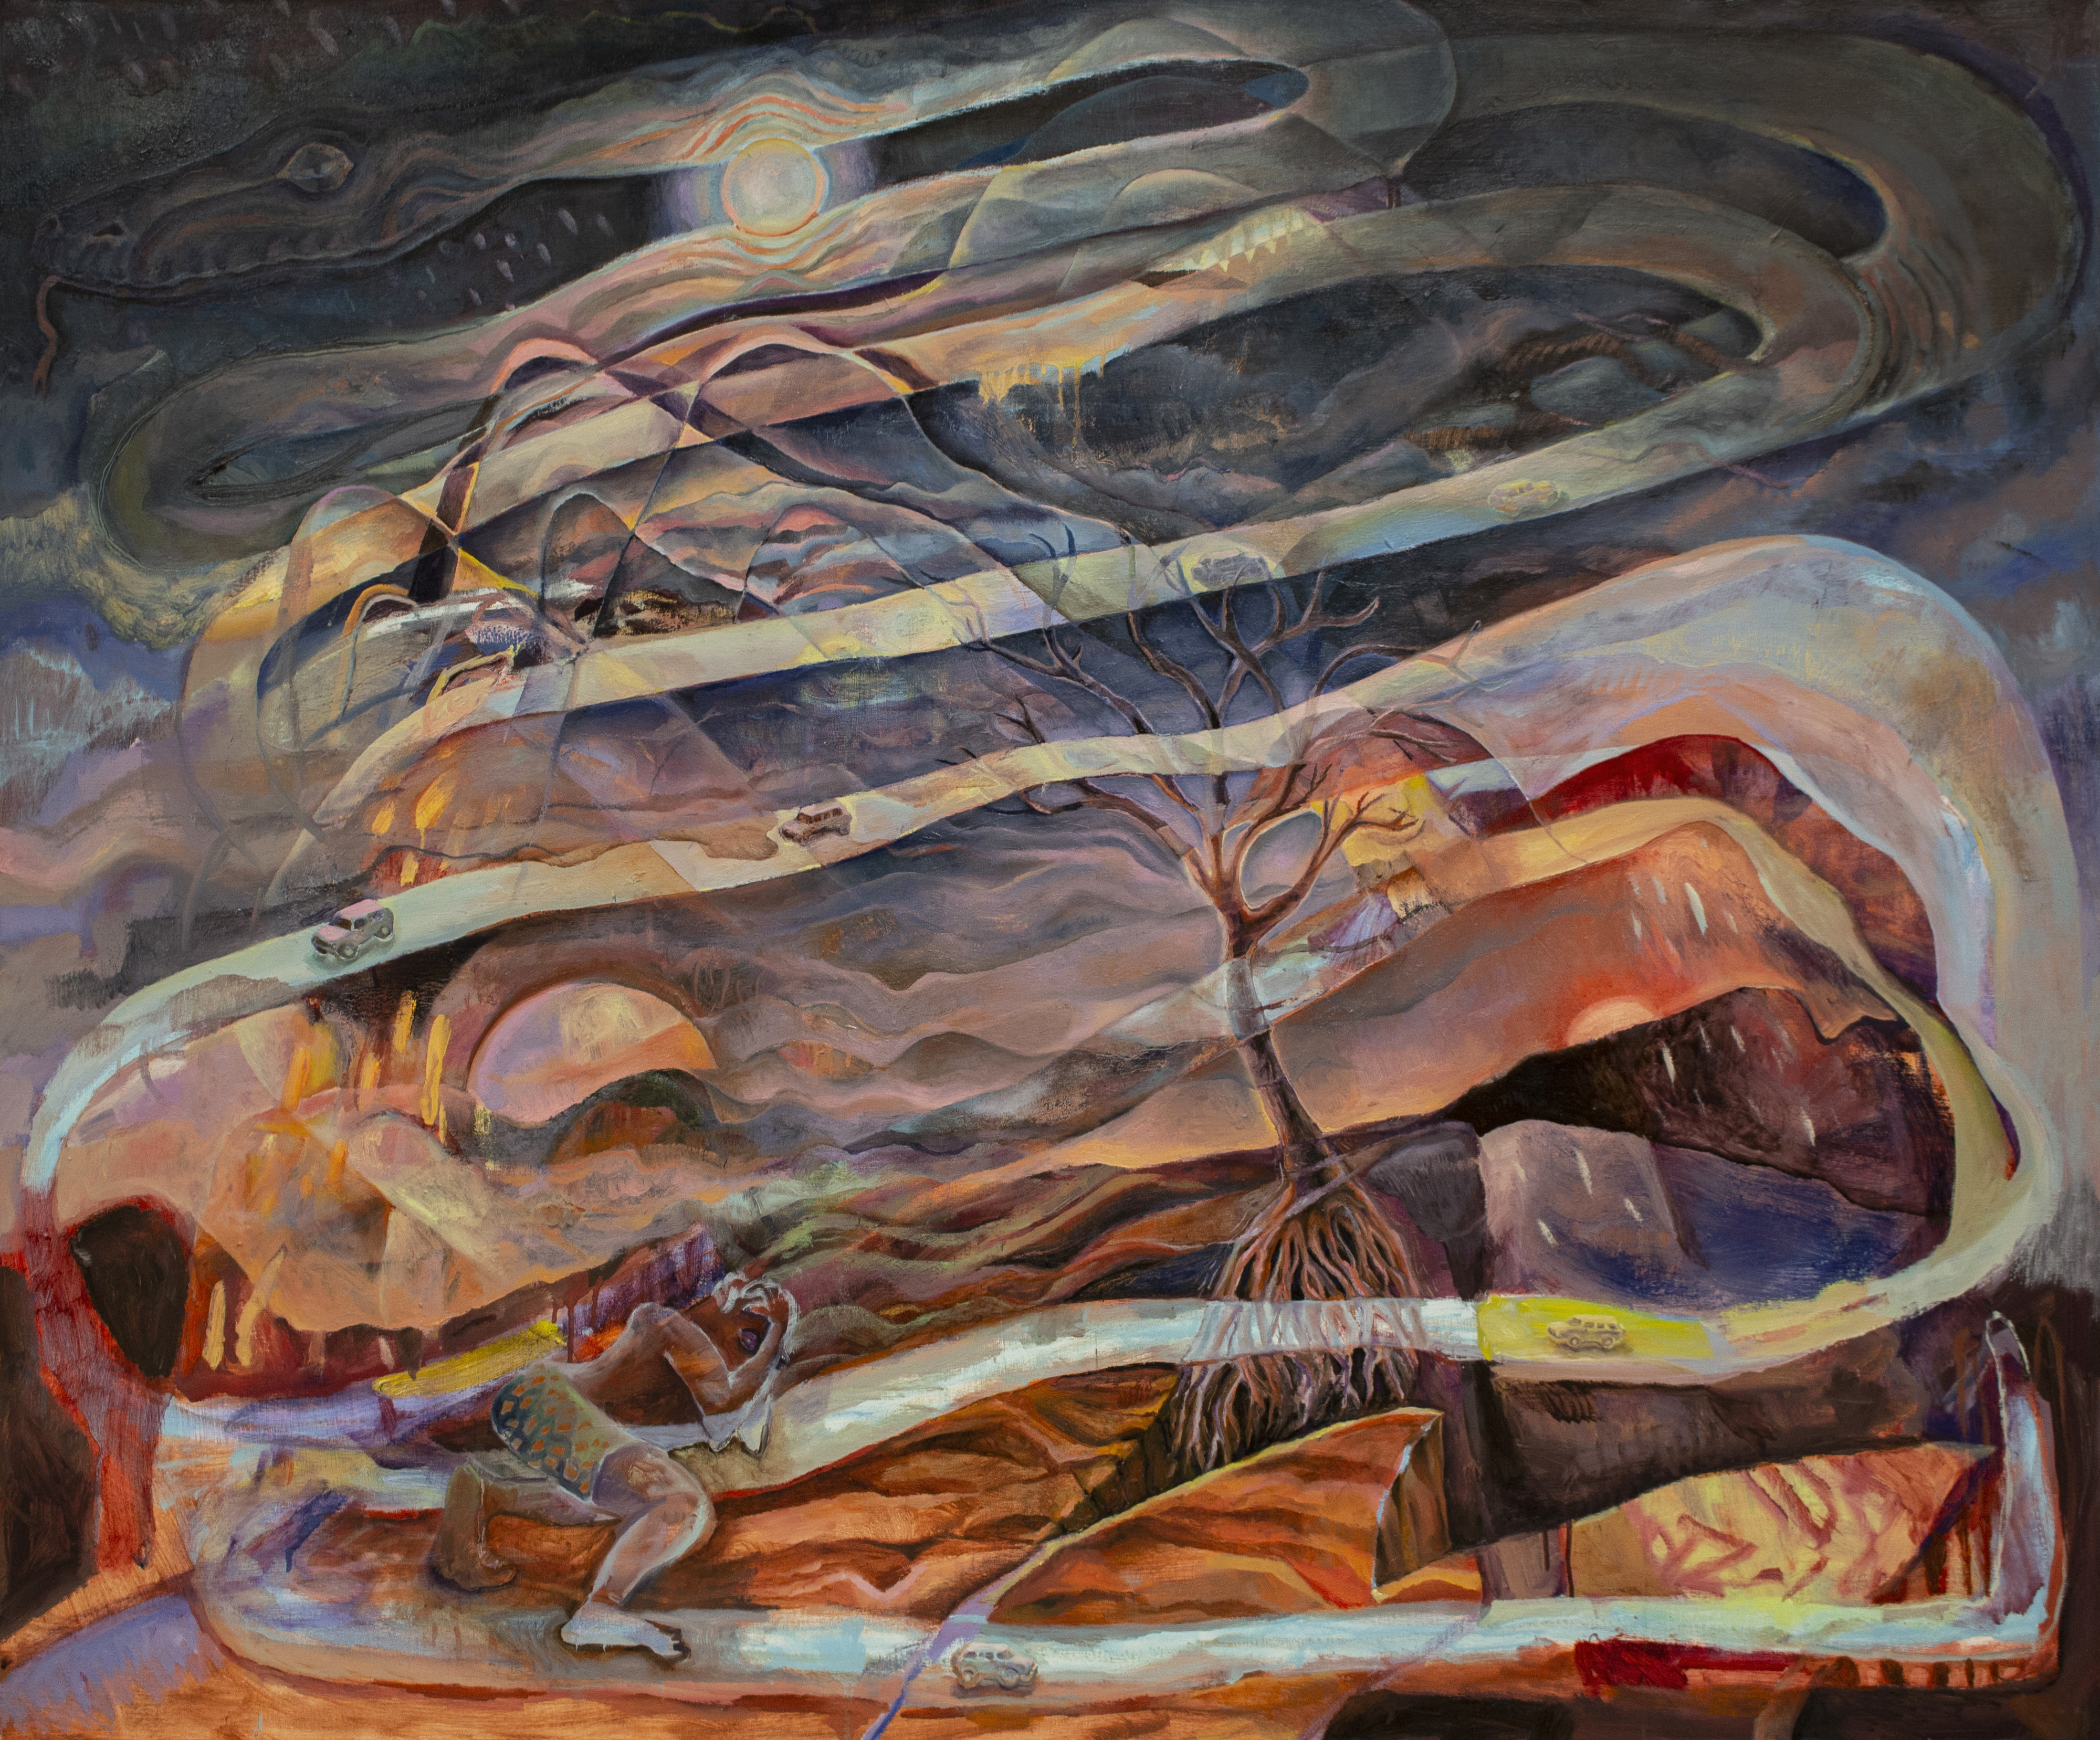 An oil painting shows parts of figures in a mountainous landscape amid swirling, foggy lines that could be a road but culminate in the head of a snake